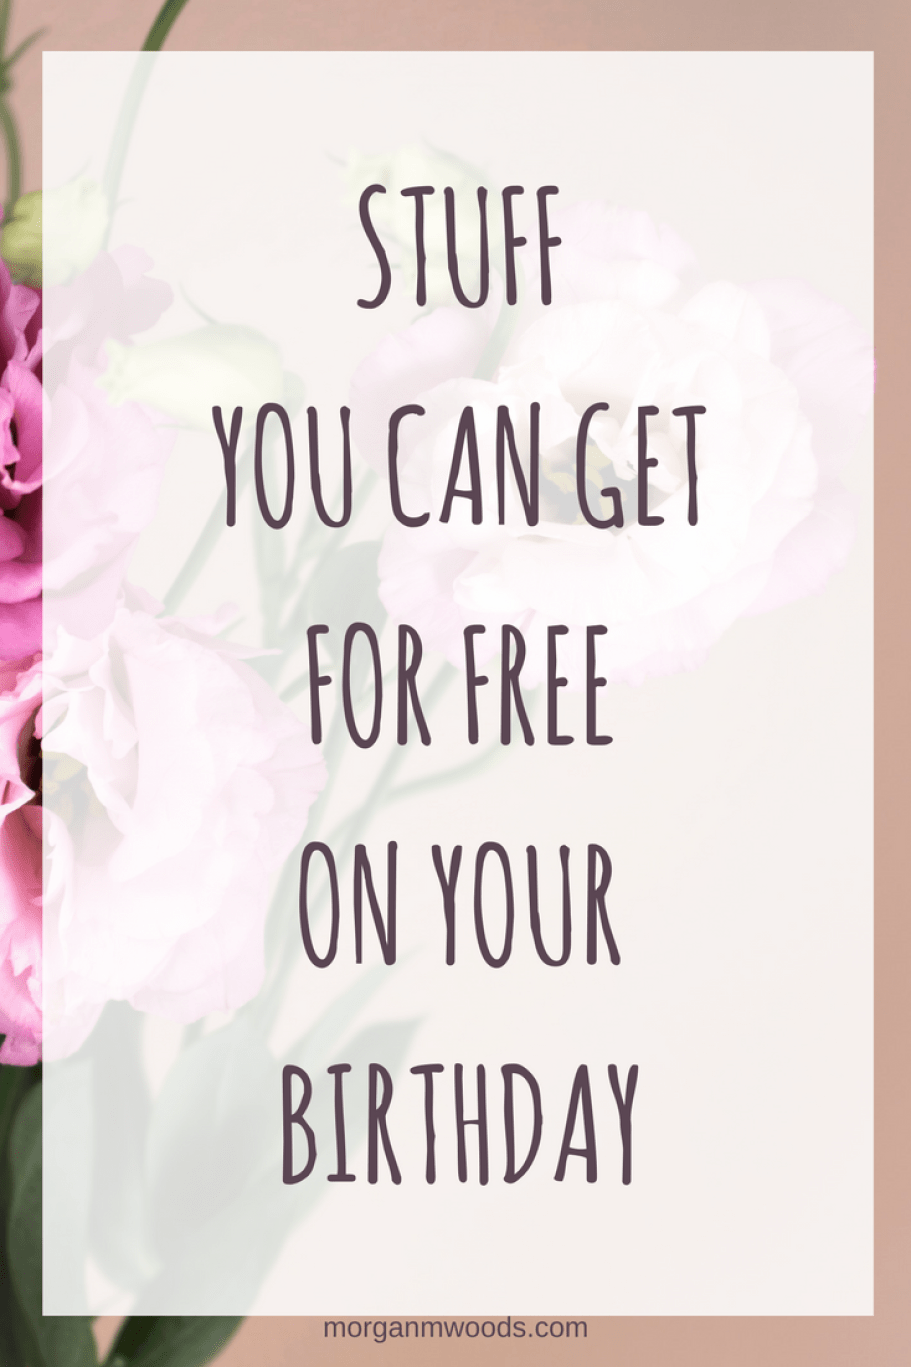 what freebies can i get on my birthday